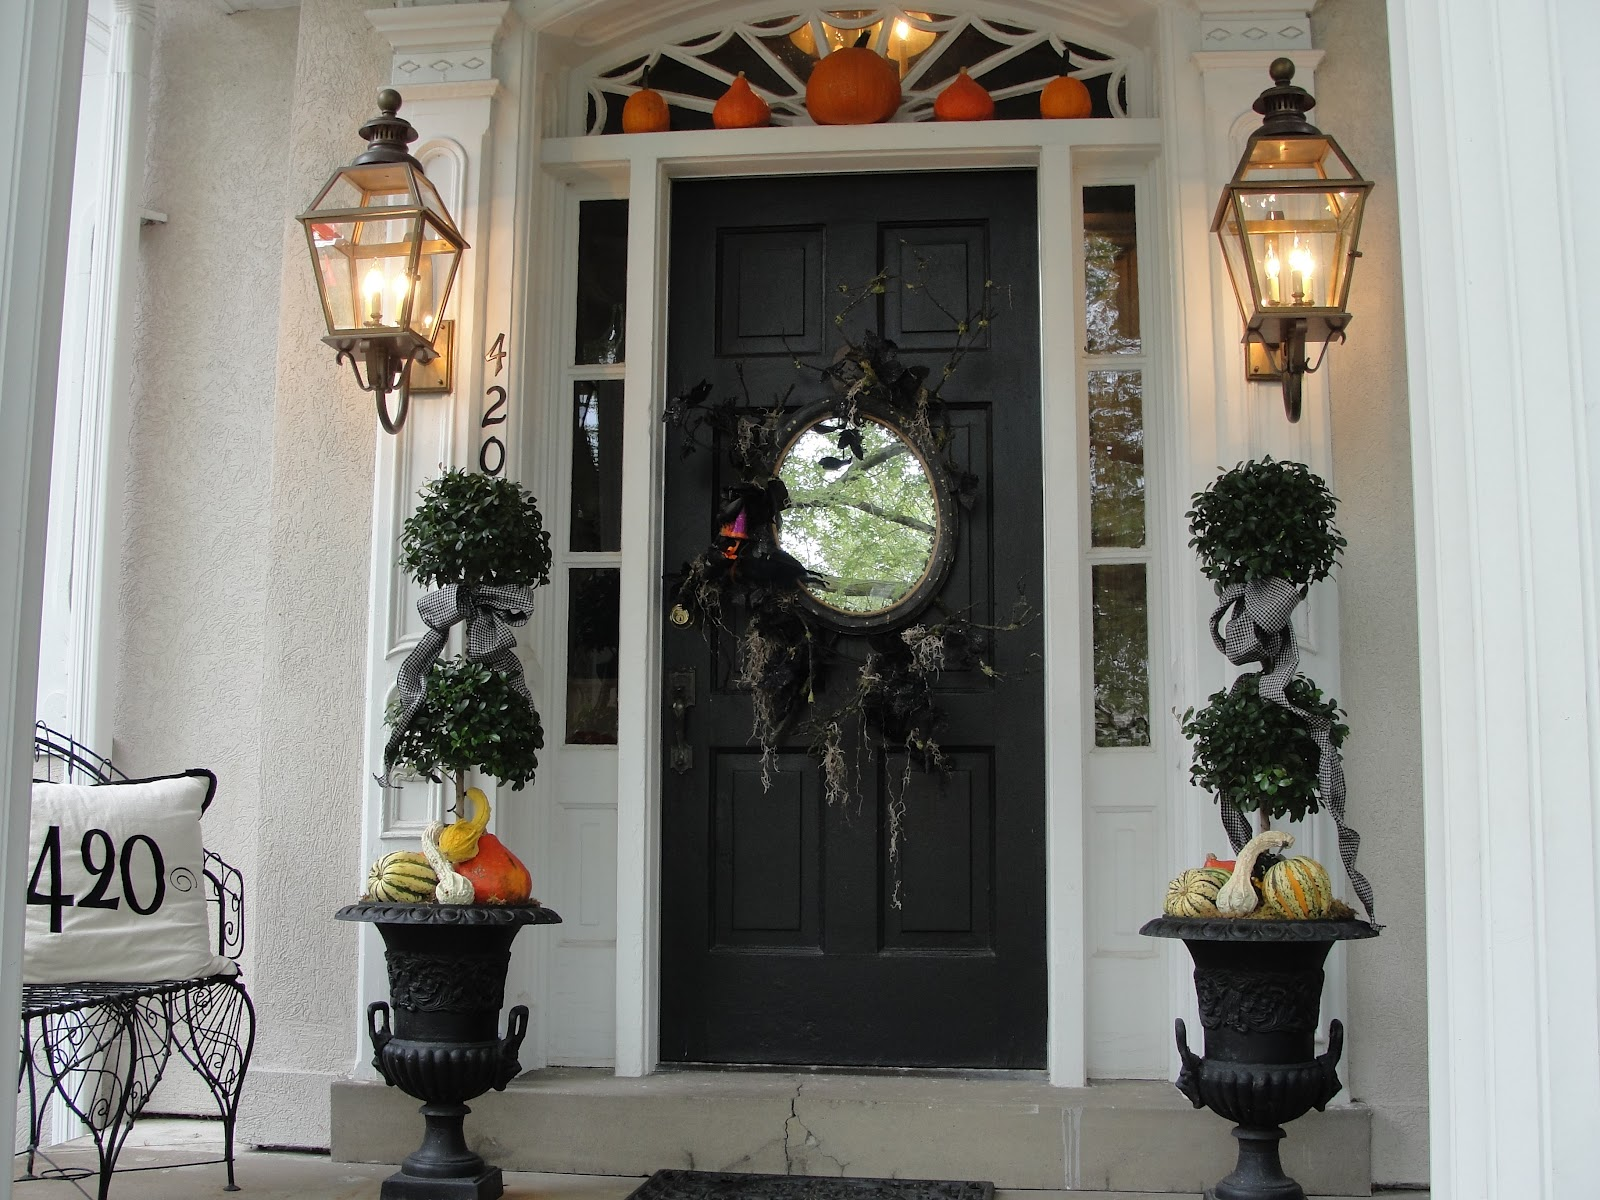 Yearning for urns the enchanted home a beautiful pair of iron urns dressed up for fall flanks this front door nell hills rubansaba